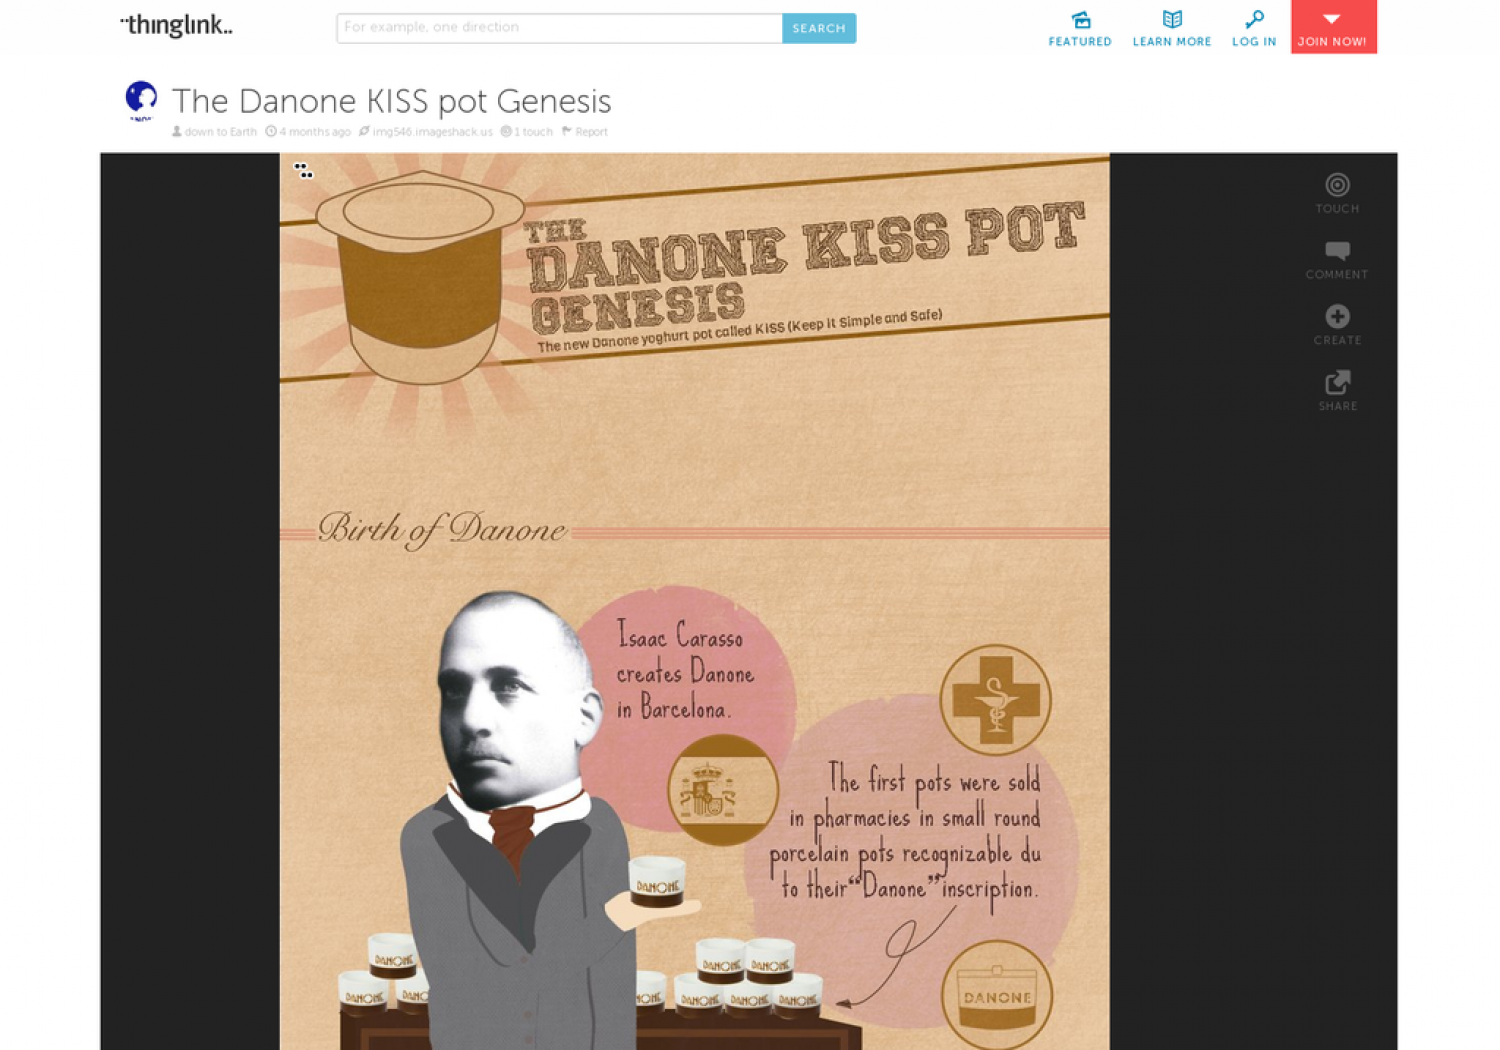 The Danone KISS pot Genesis Infographic